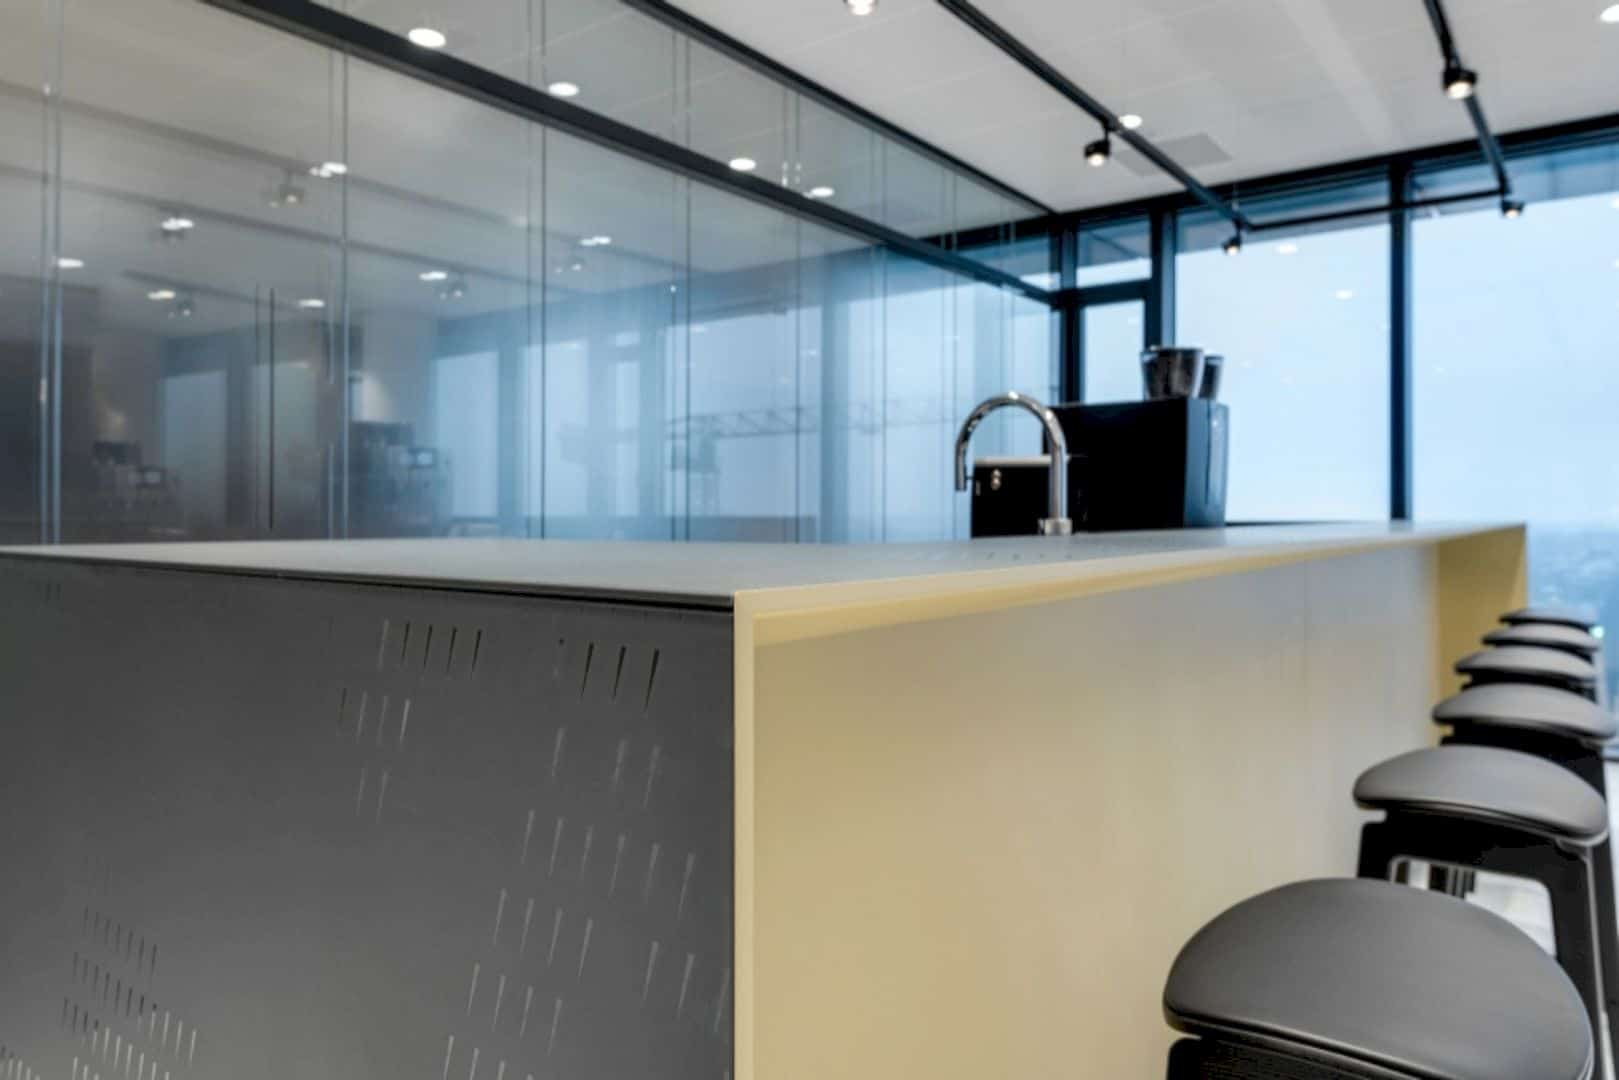 Cms Amsterdam A Warm Natural Base Office Design Merged With Curves And Transparency 3